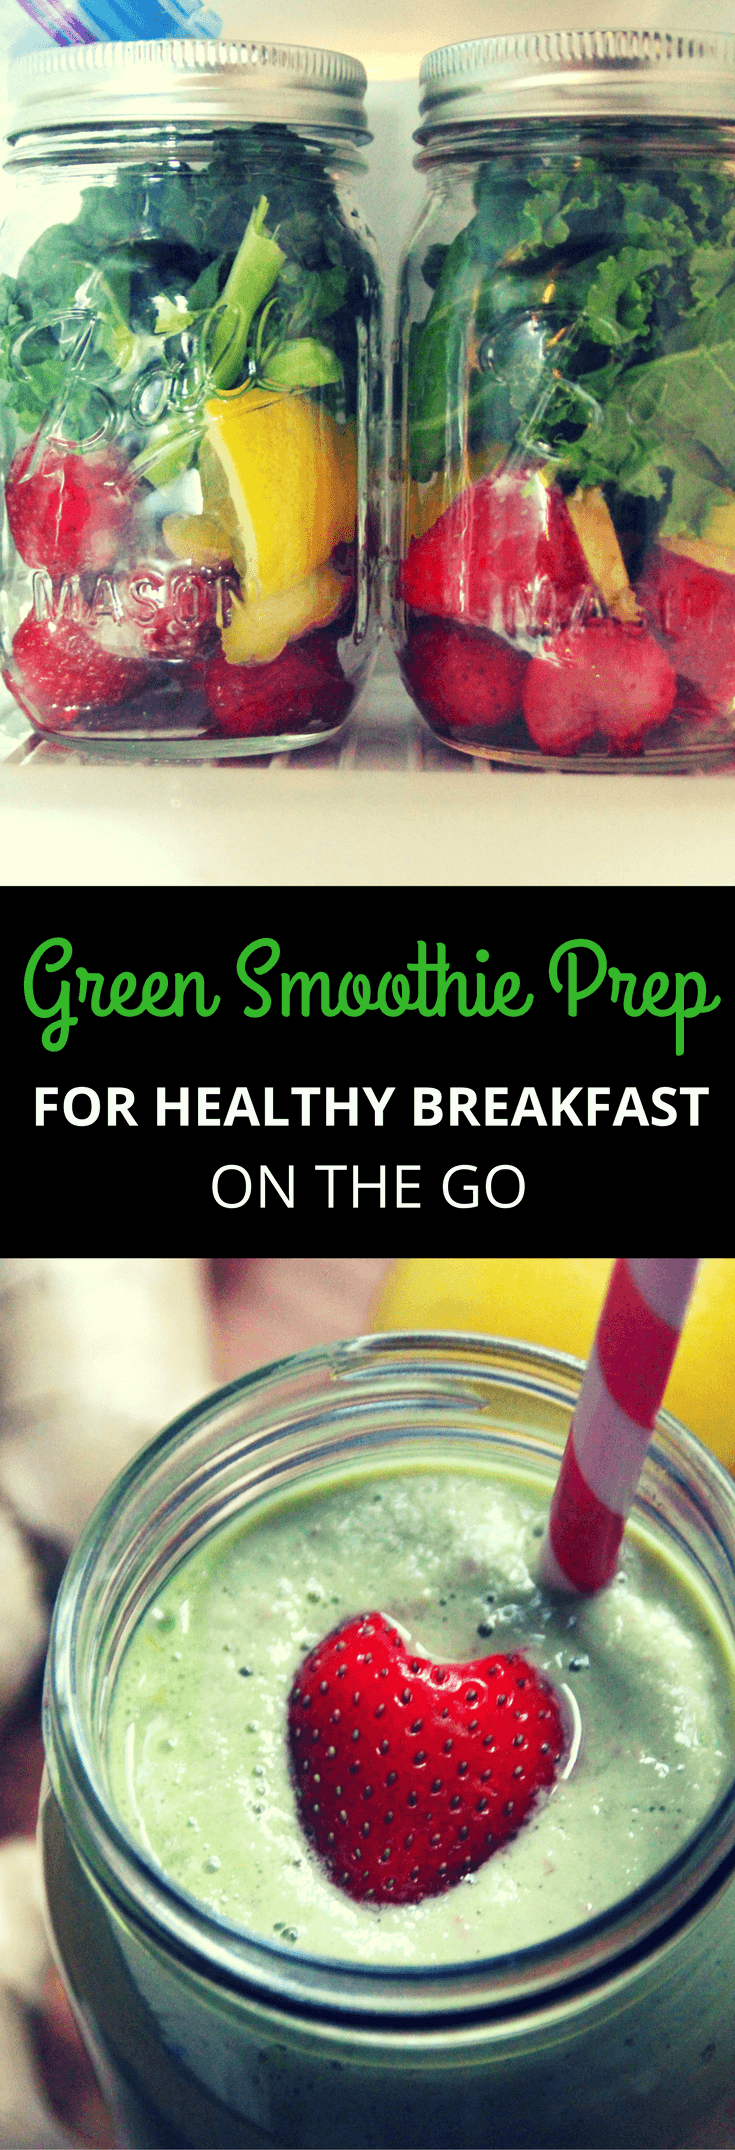 Easy step-by-step prep guide for making green smoothies for weight loss, more energy and glowing skin.  Make ahead a week's worth of healthy breakfast with green smoothie recipes in 20 minutes or less.